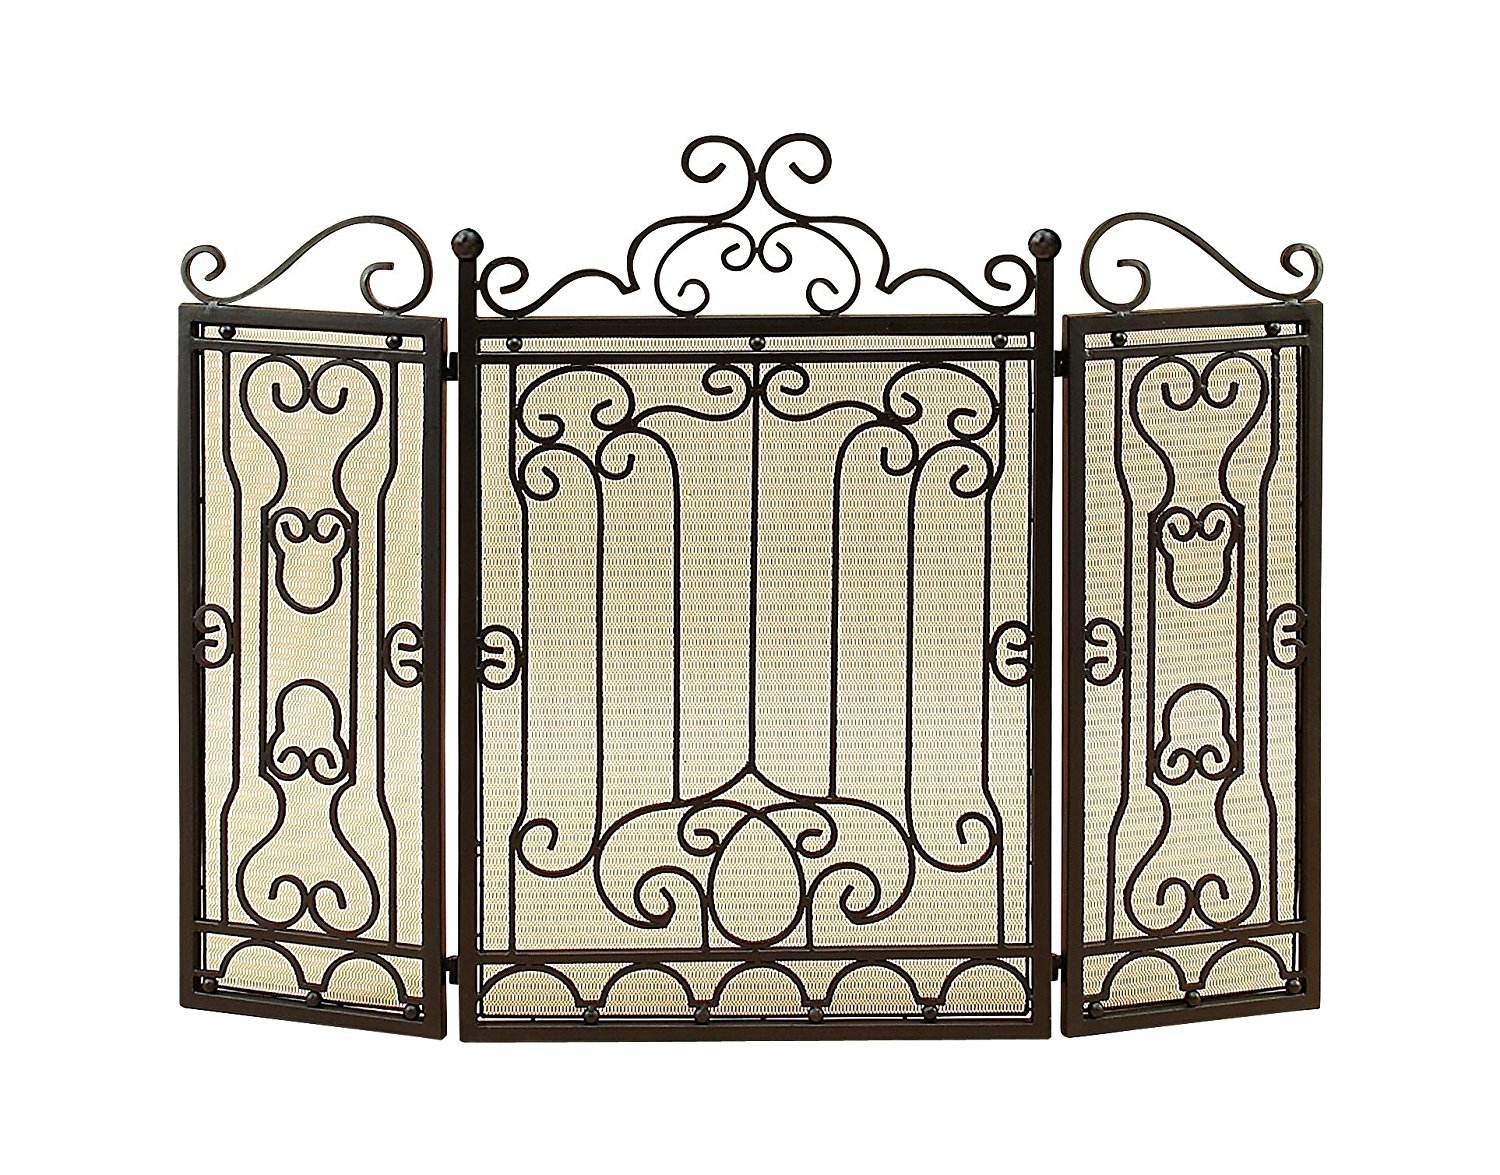 Victorian Antique Metal Fireplace Screen Bronze Curled Art Living Room Décor 90569 by Woodland Imports